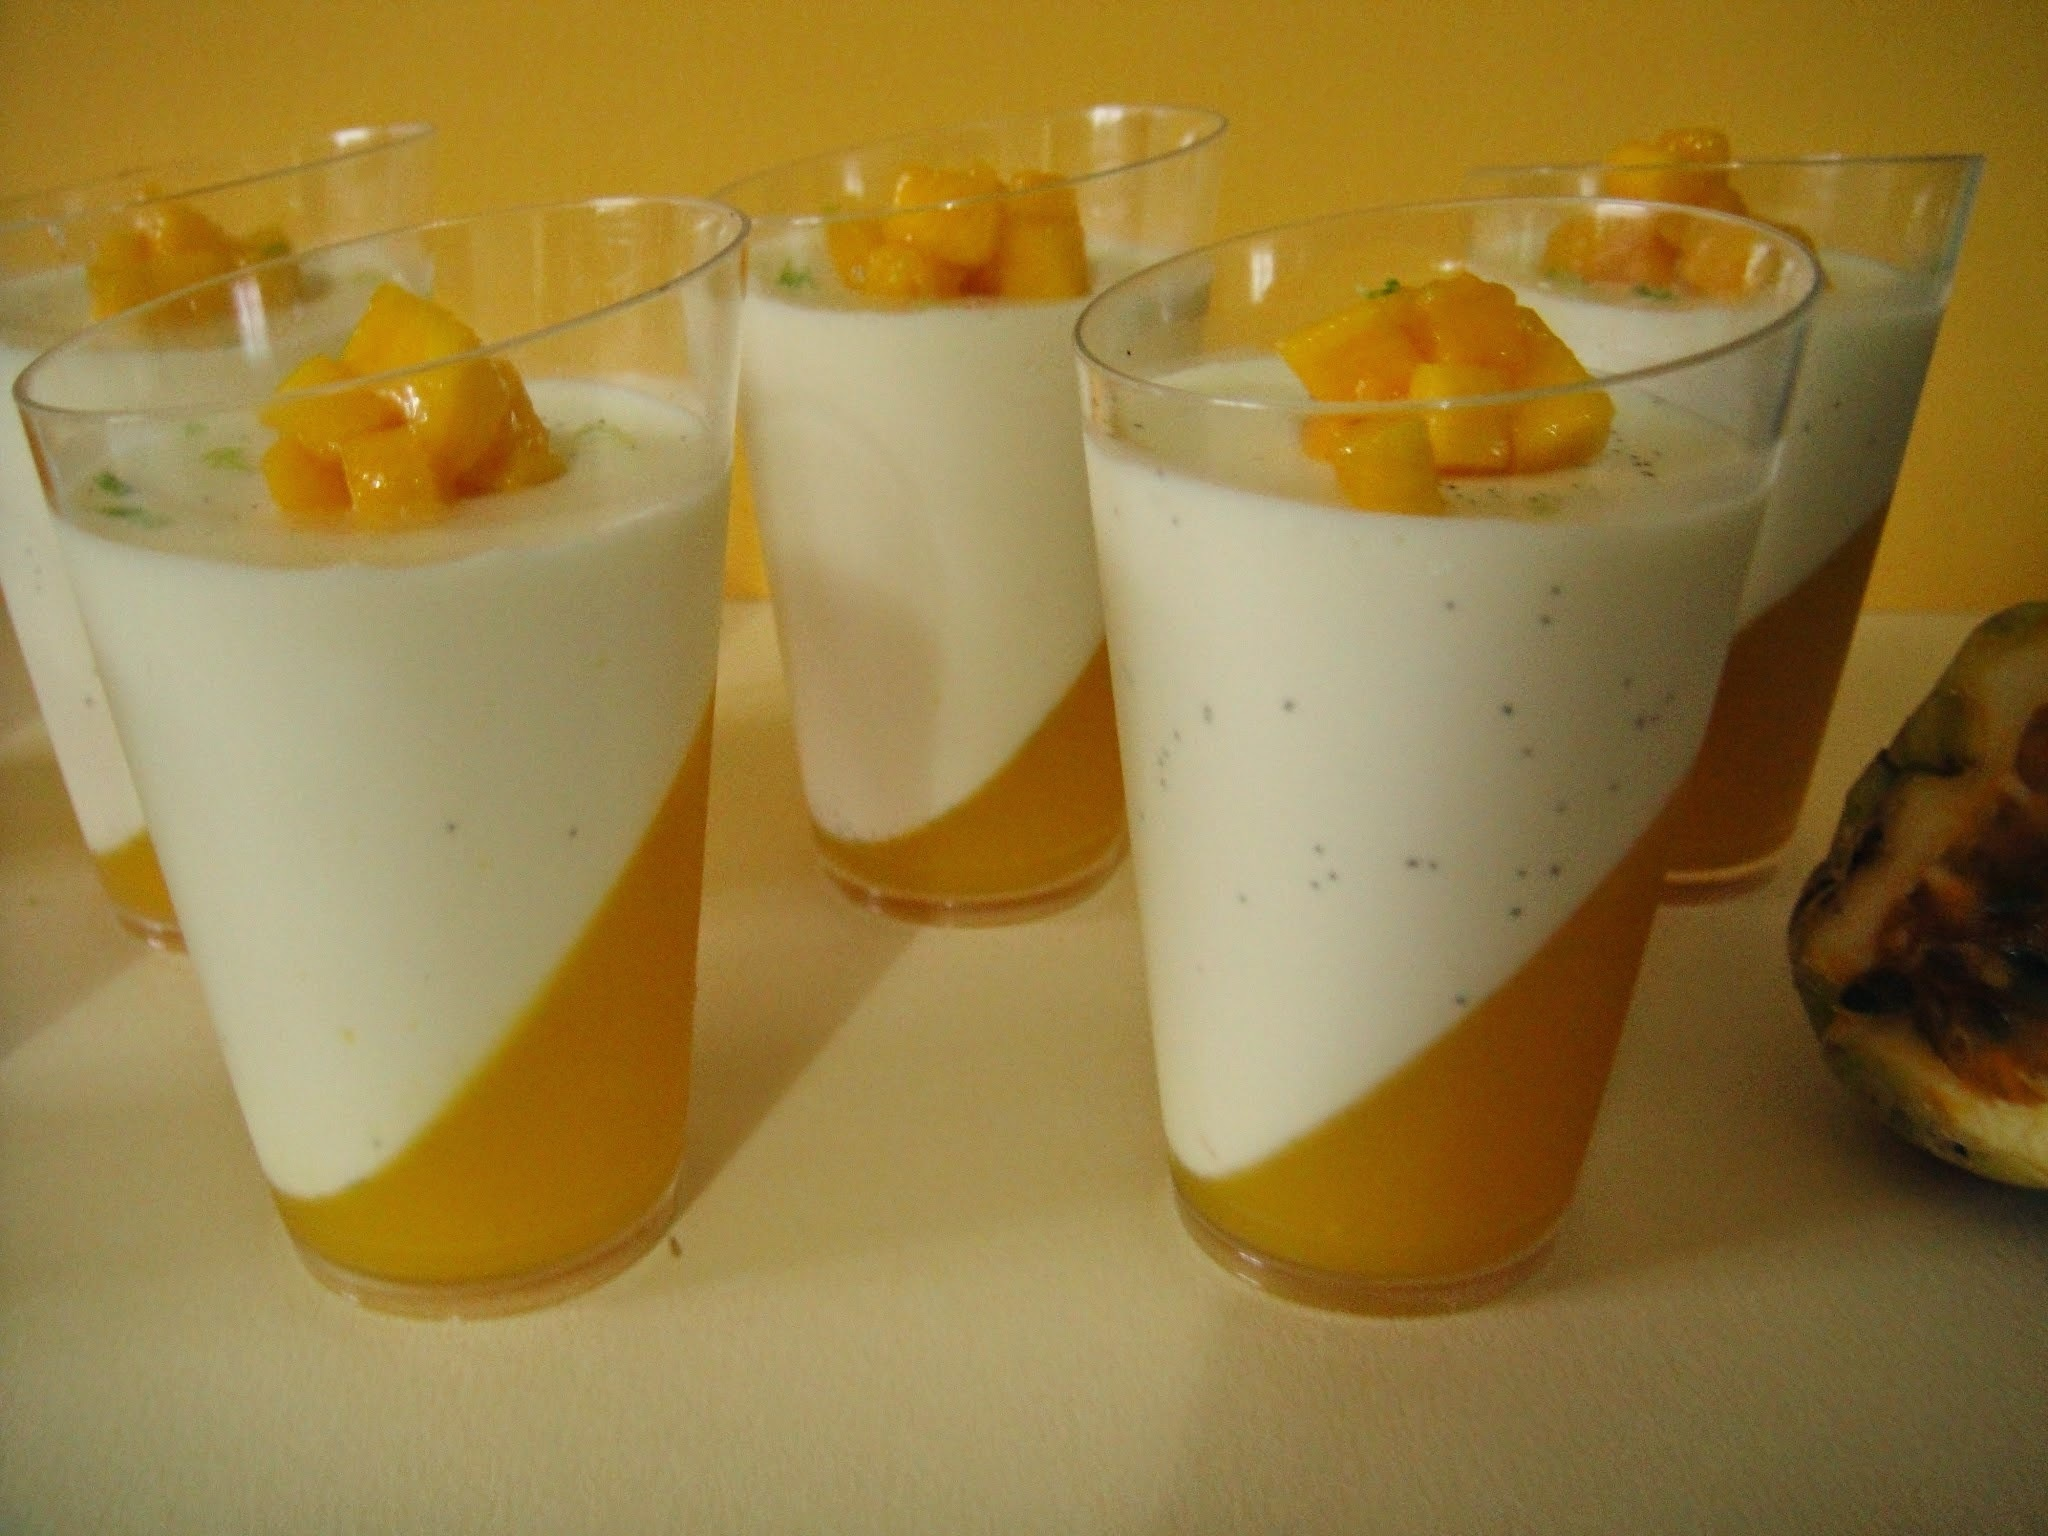 Panna cotta vanille, mangue & fruits de la passion